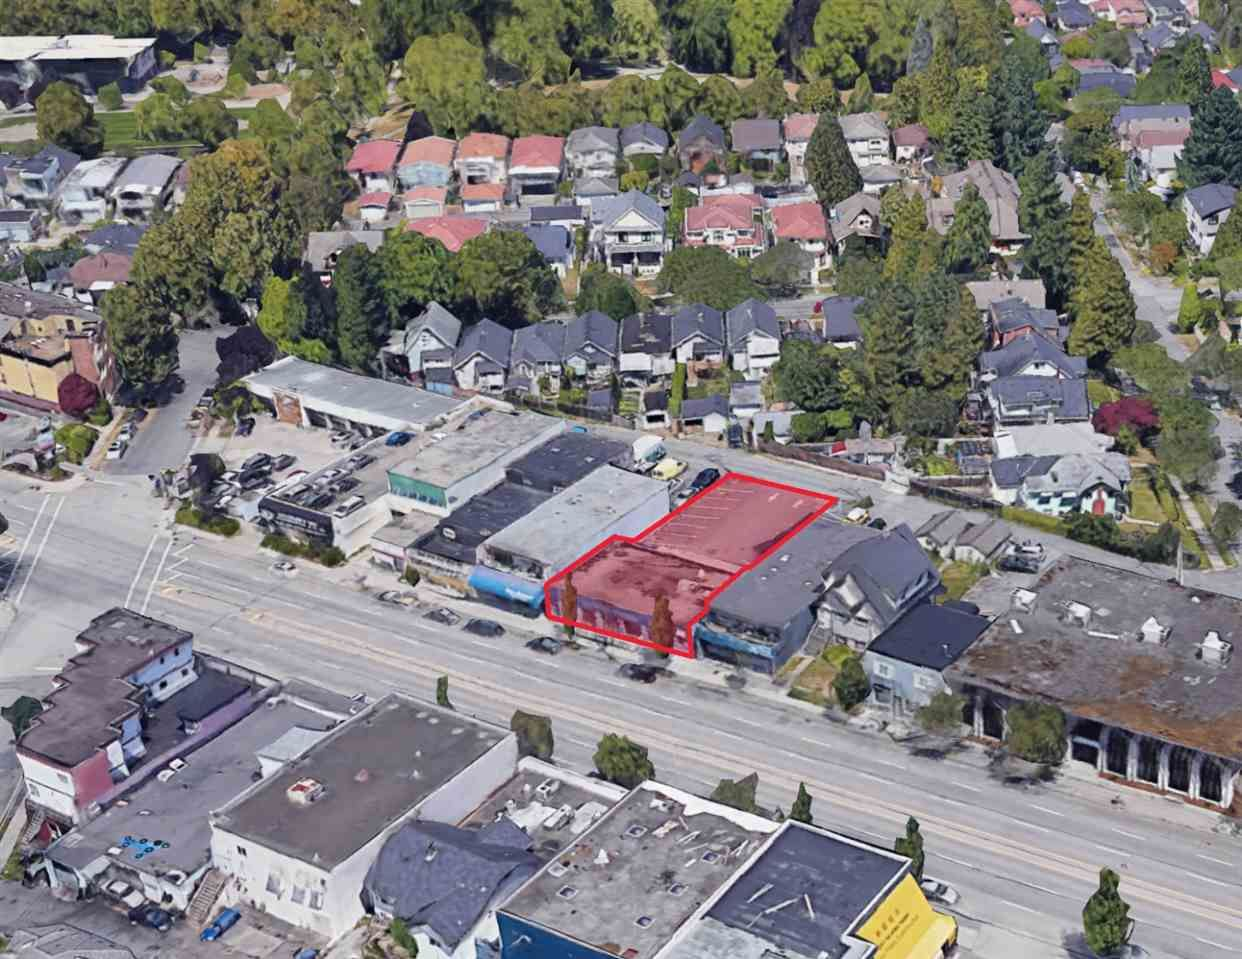 Main Photo: 1143 KINGSWAY in Vancouver: Knight Land Commercial for sale (Vancouver East)  : MLS®# C8036295